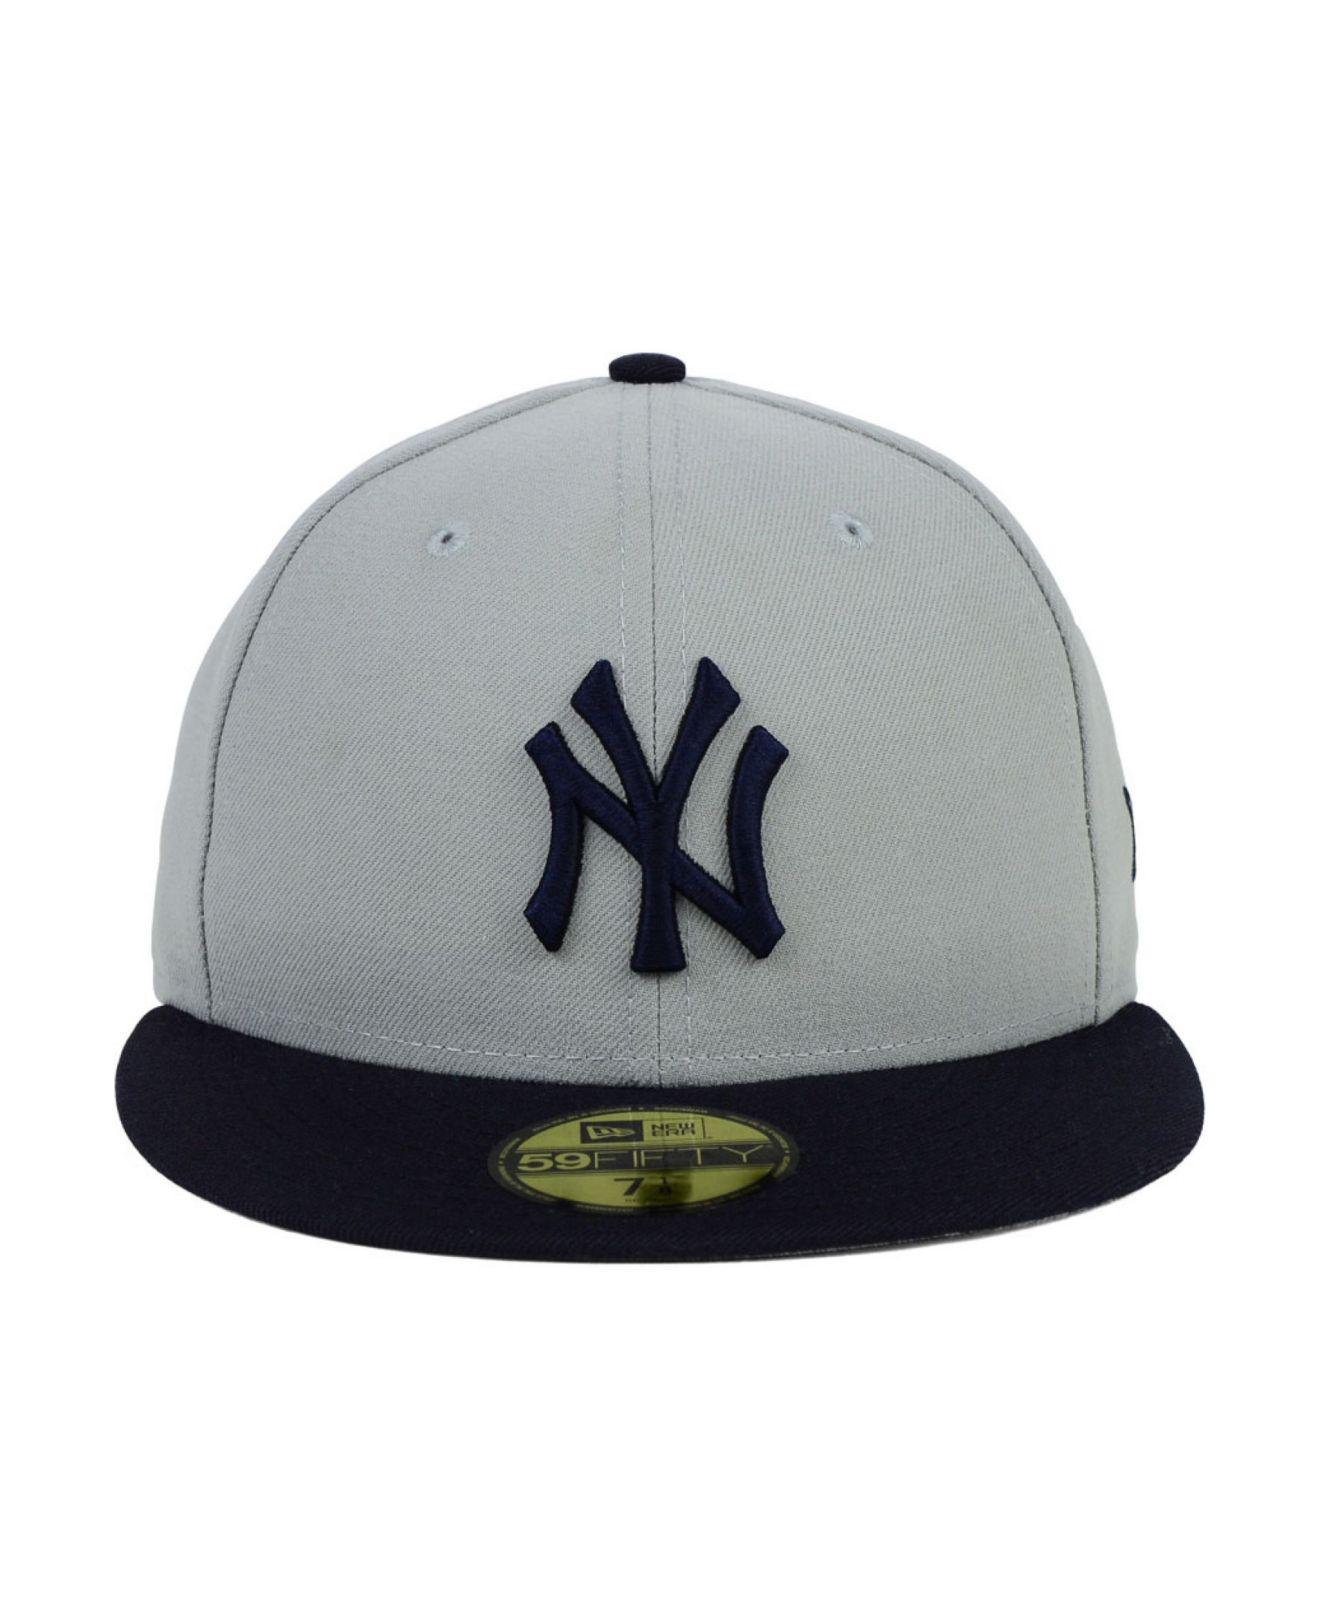 best website e411b 9539e reduced new york mets batting practice low profile 59fifty 1ca1a 4203e  low  price lyst ktz batting practice diamond era 59fifty cap in gray for men  save ...